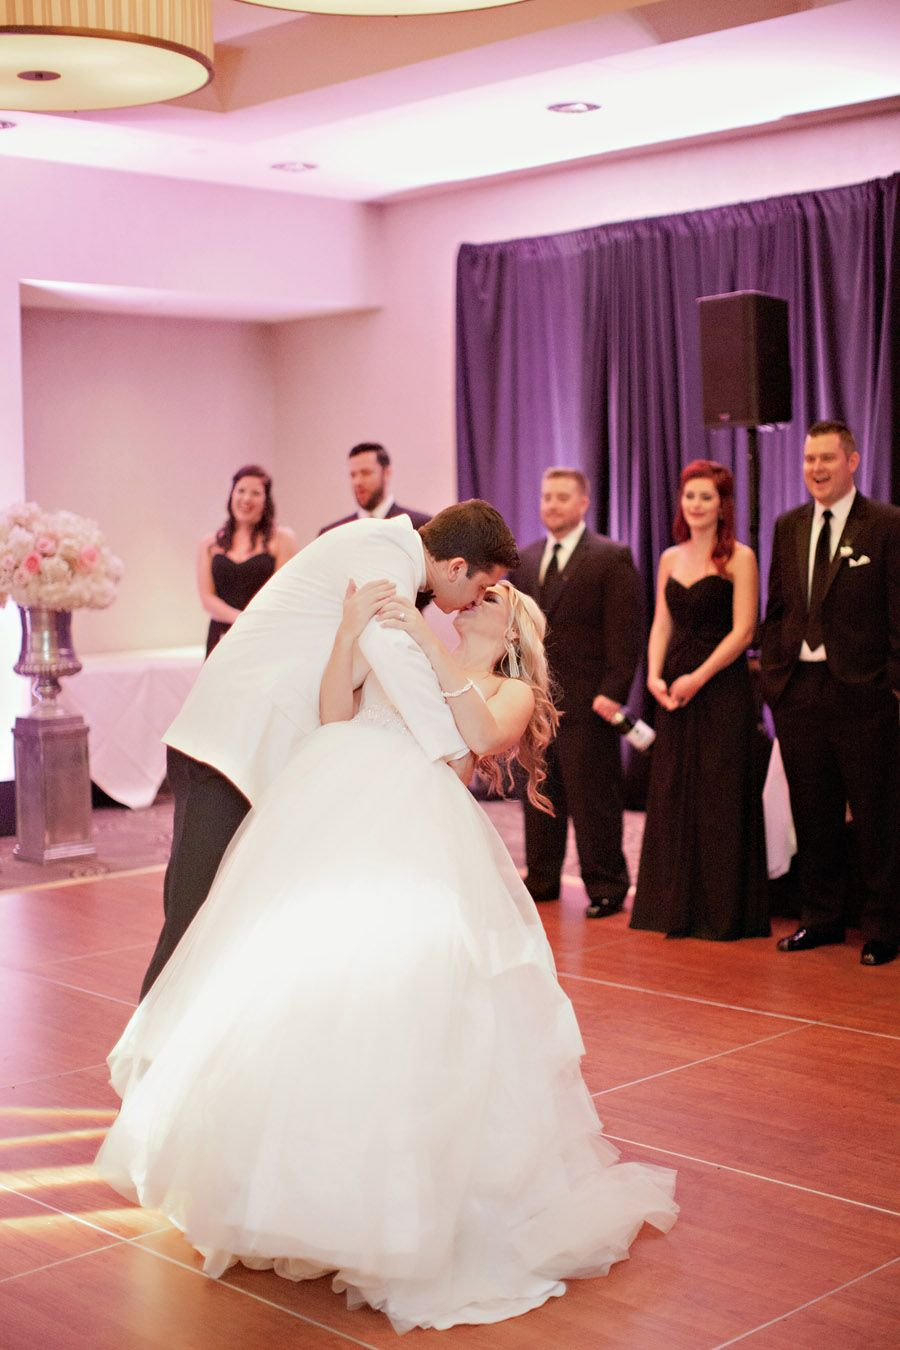 Dallas Wedding Photographer: Thanksgiving Tower Club | Amanda Colby ...